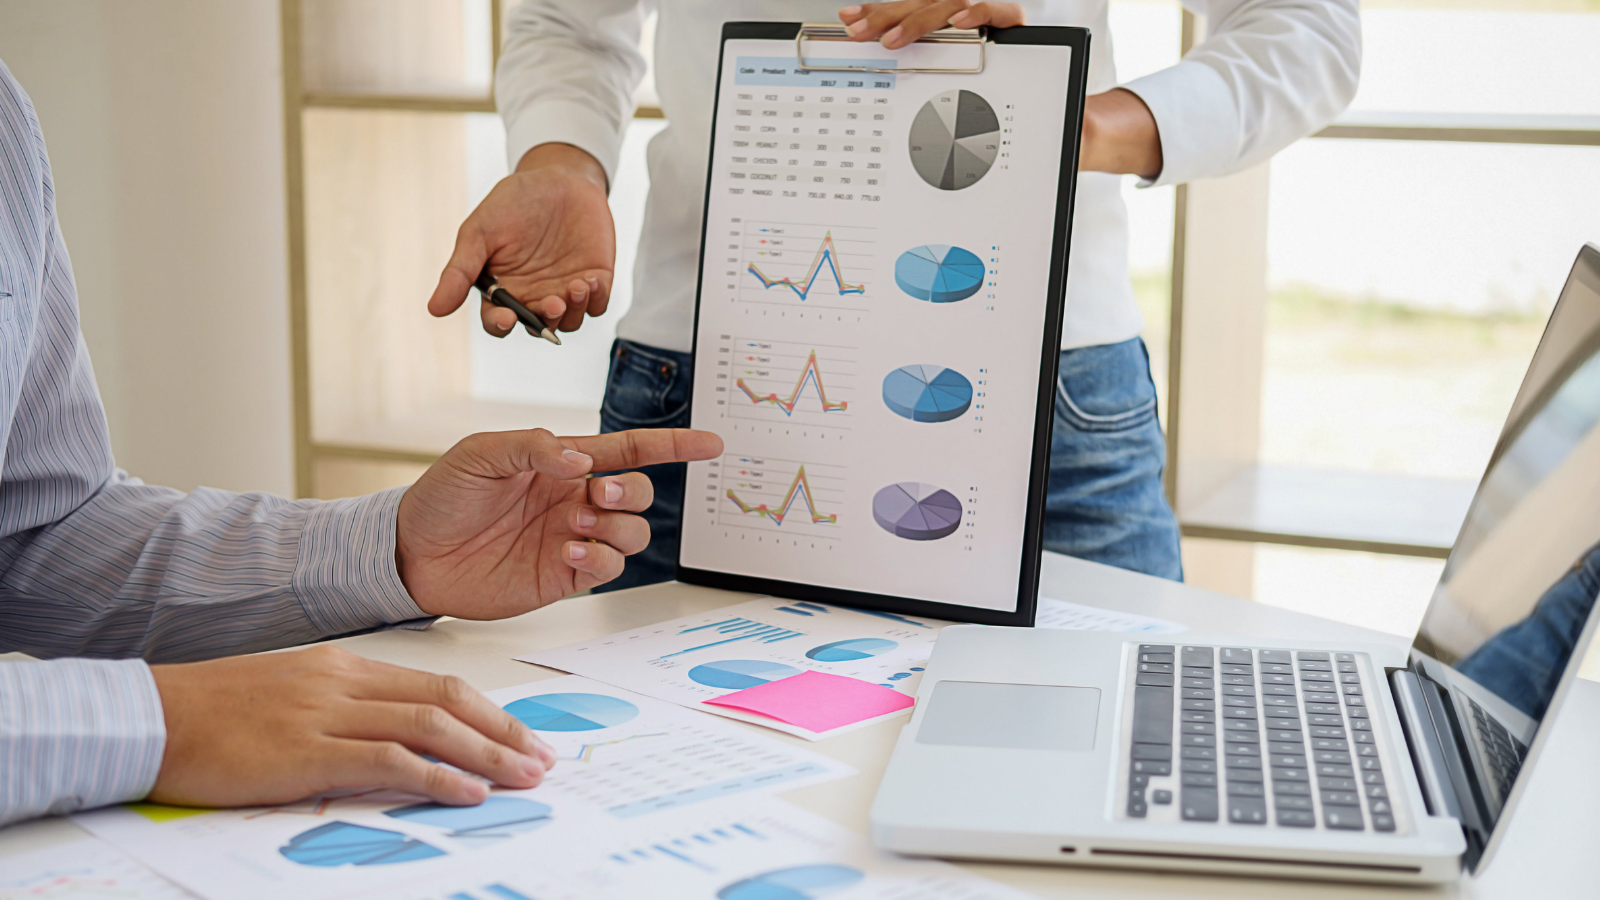 5 Ways to Improve Employee Engagement on a Budget